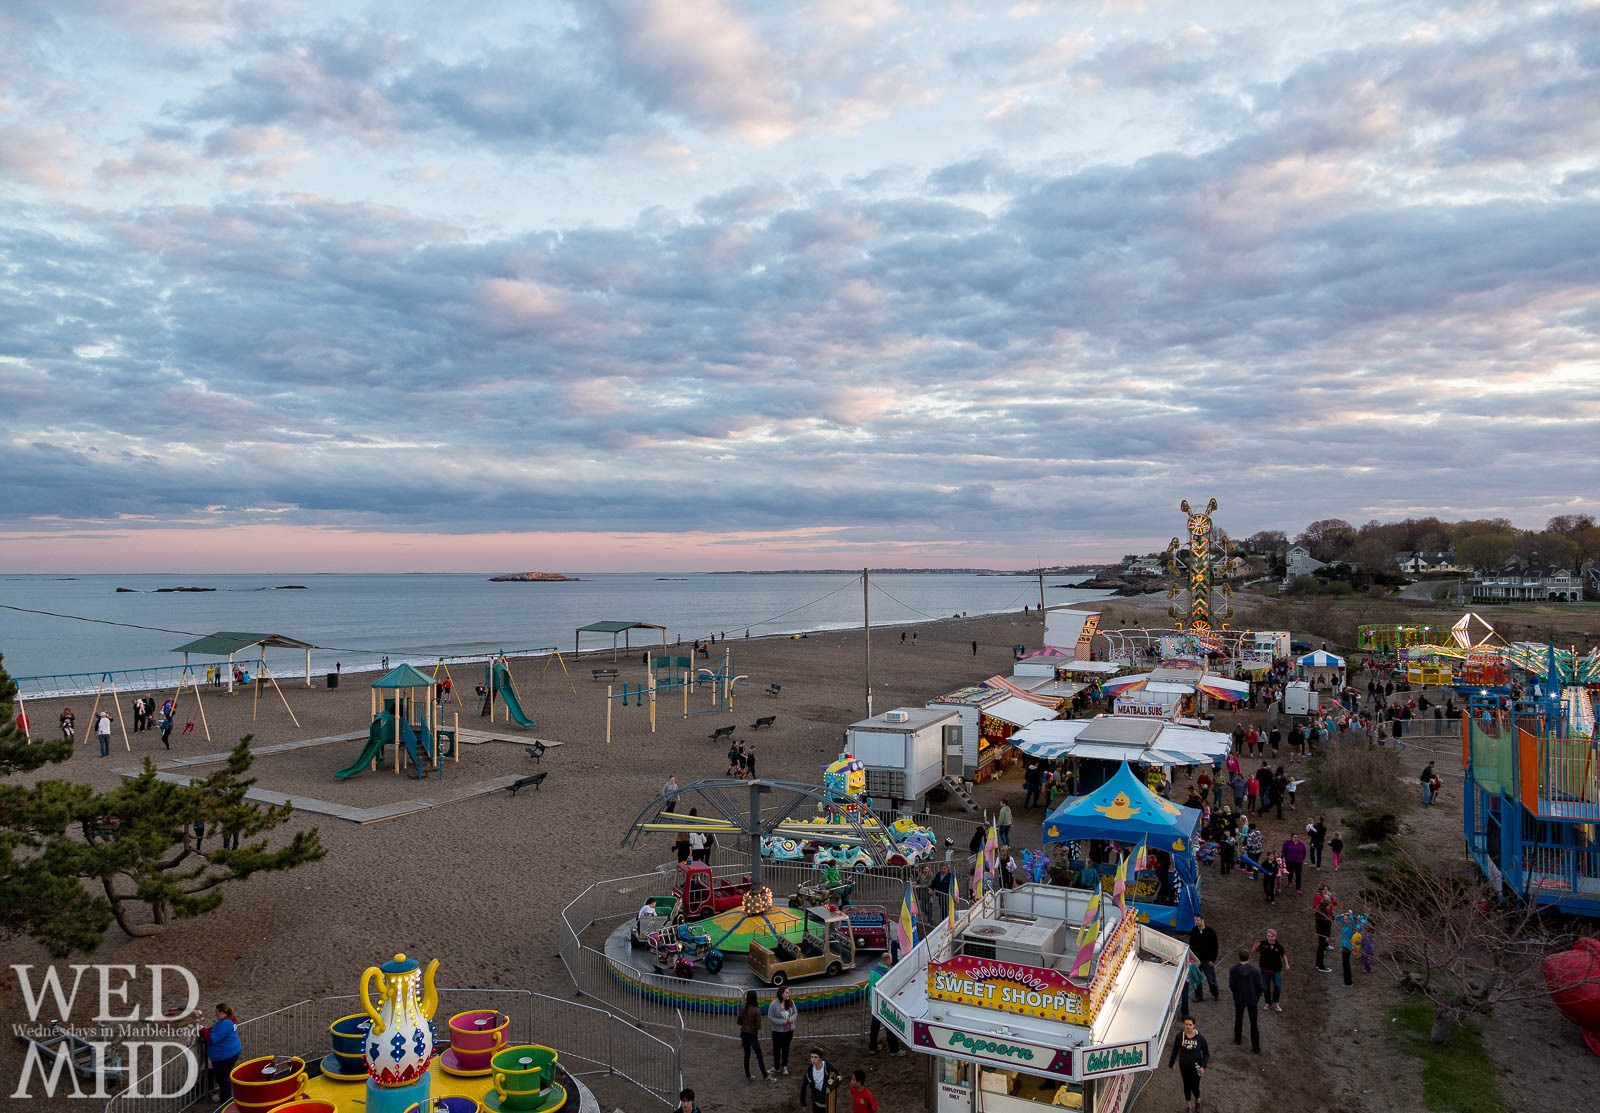 A ride on the ferris wheel at the Marblehead Carnival is timed to capture a sunset from the top of the wheel